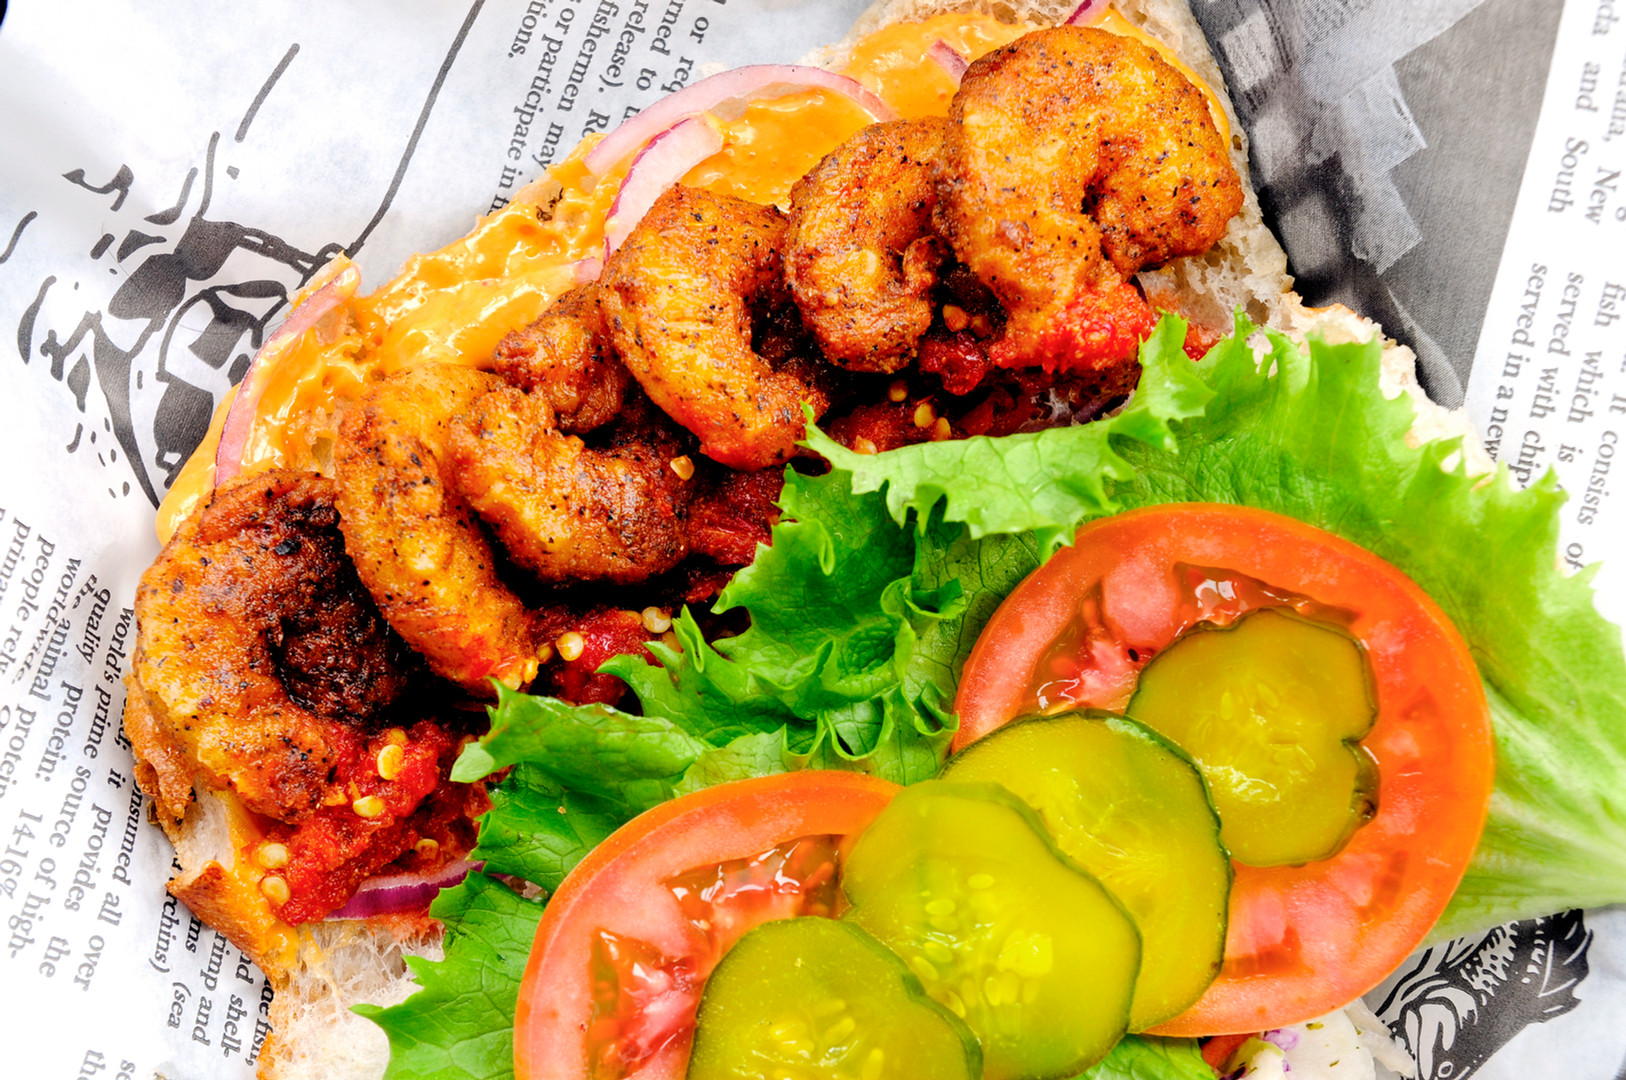 Shrimp Po Boy 1.jpg